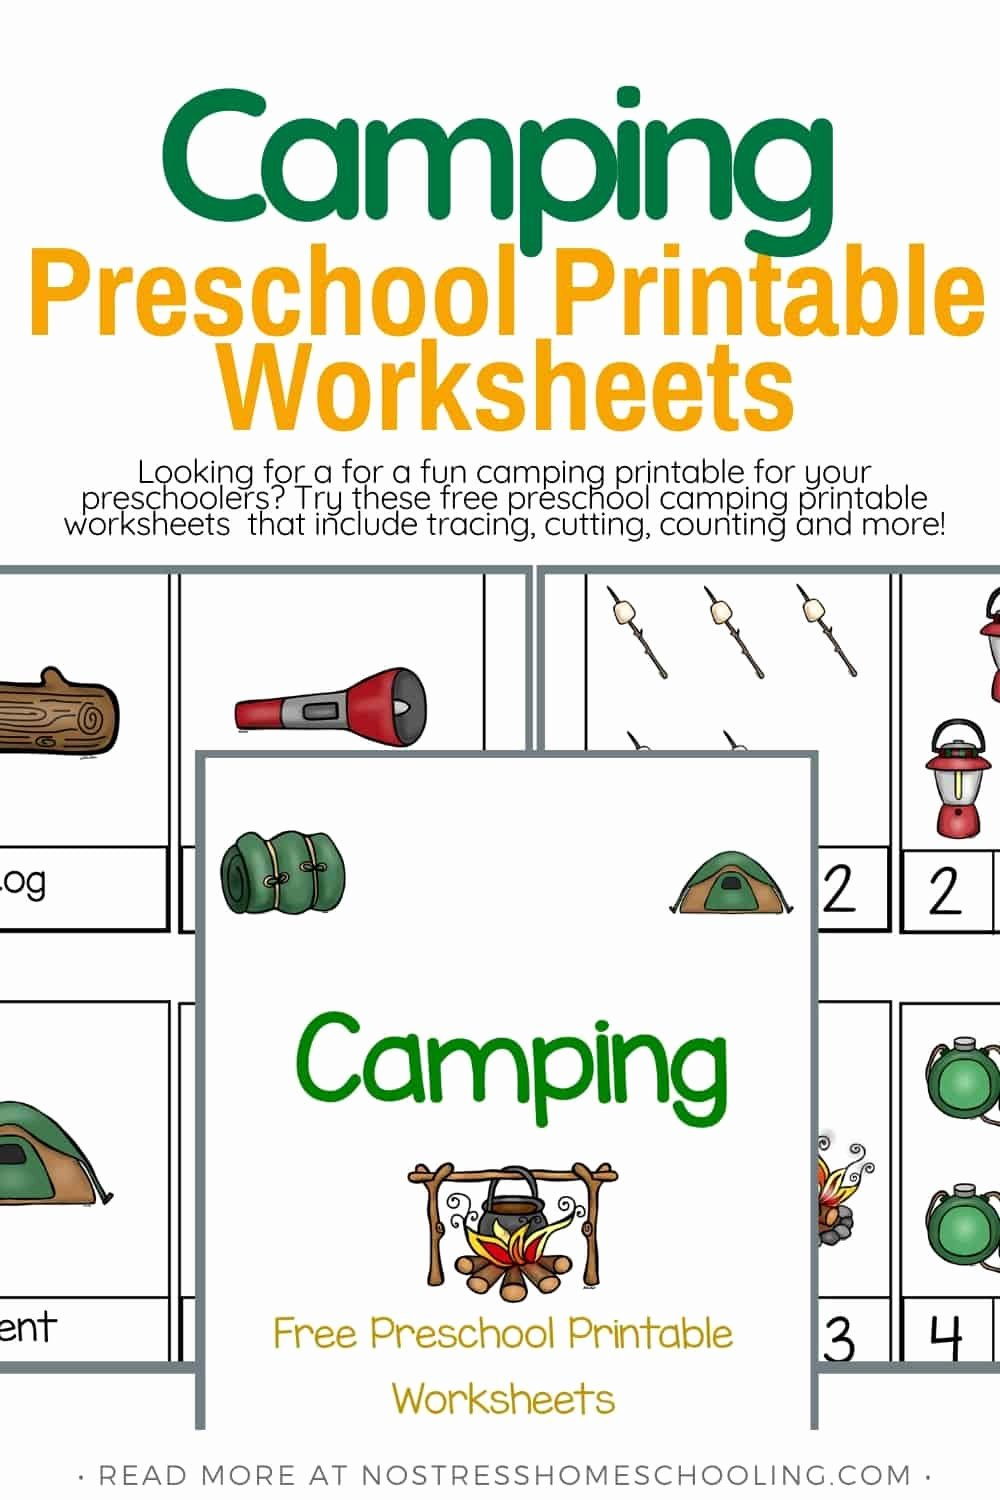 Camping Worksheets for Preschoolers Printable Free Camping Preschool Printable Worksheets